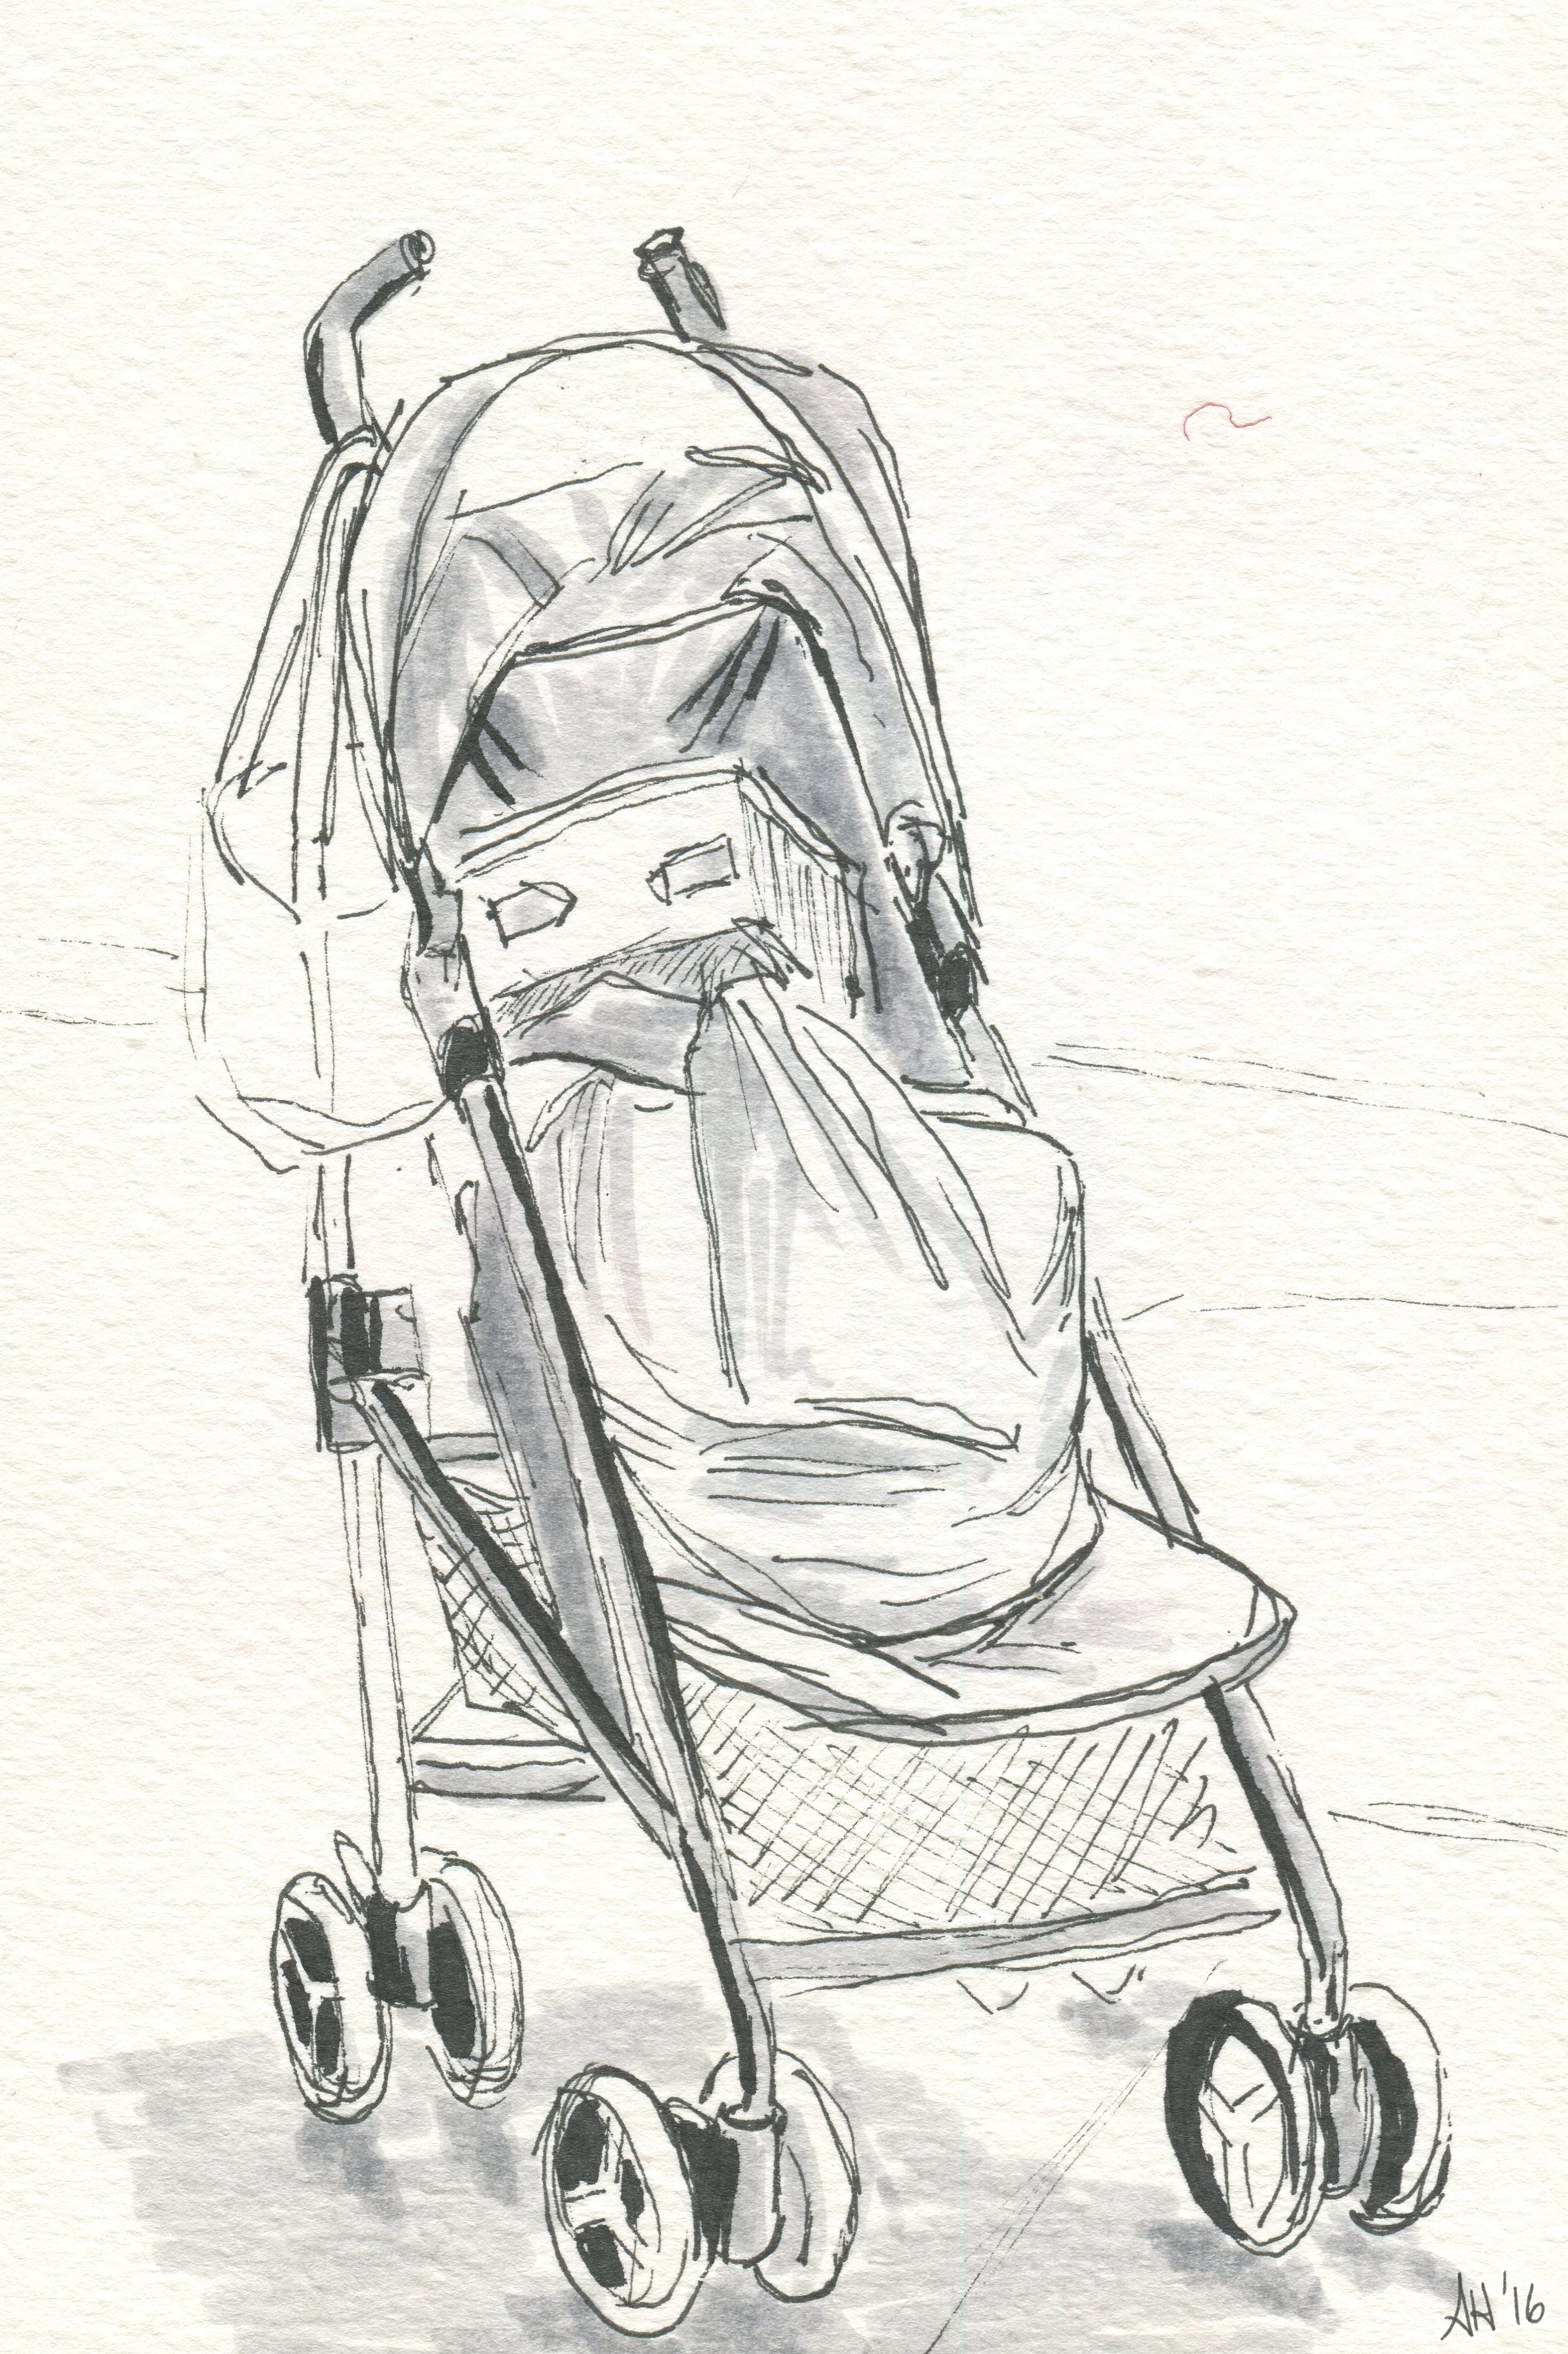 a sketch of an empty stroller by alleanna harris